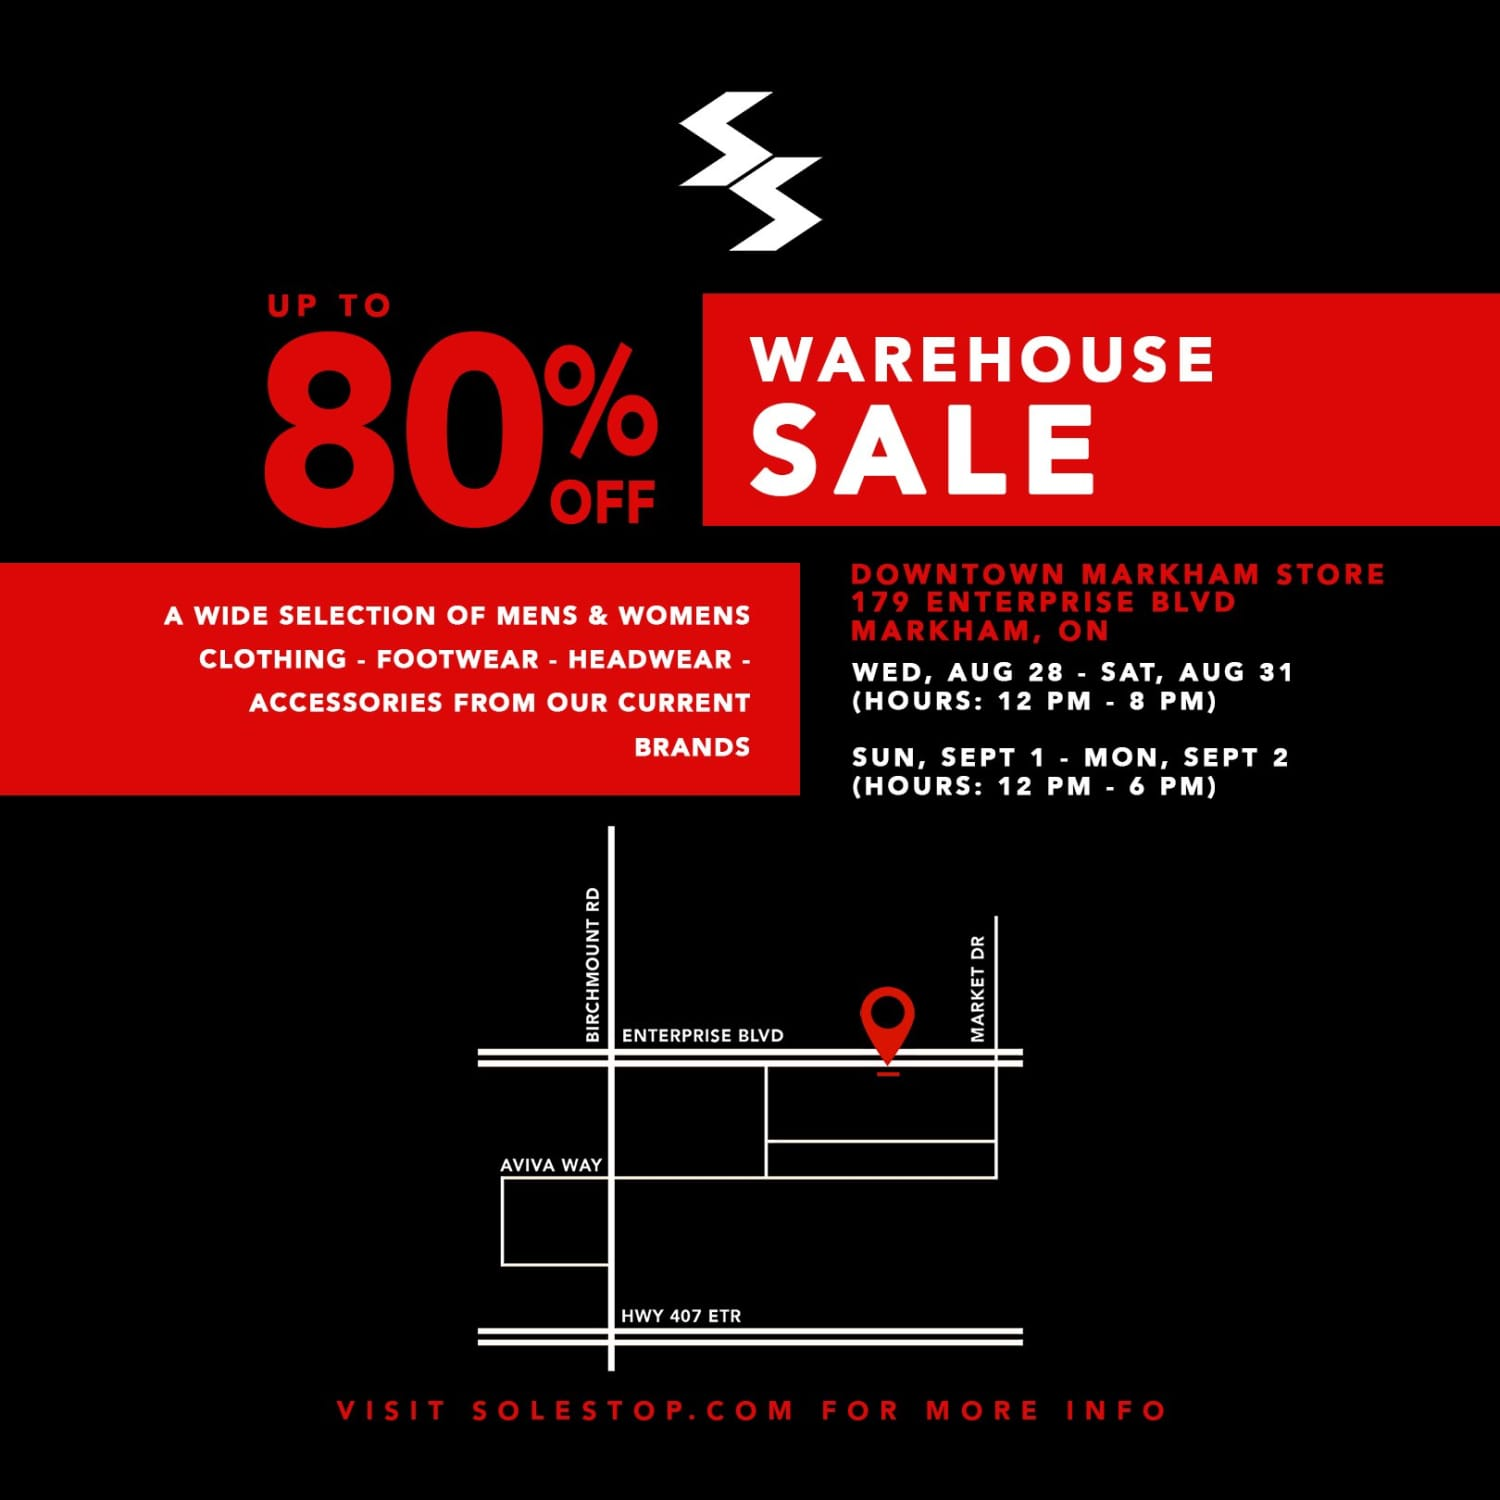 SOLESTOP WAREHOUSE SALE - Up to 80% off EVERYTHING in-store!